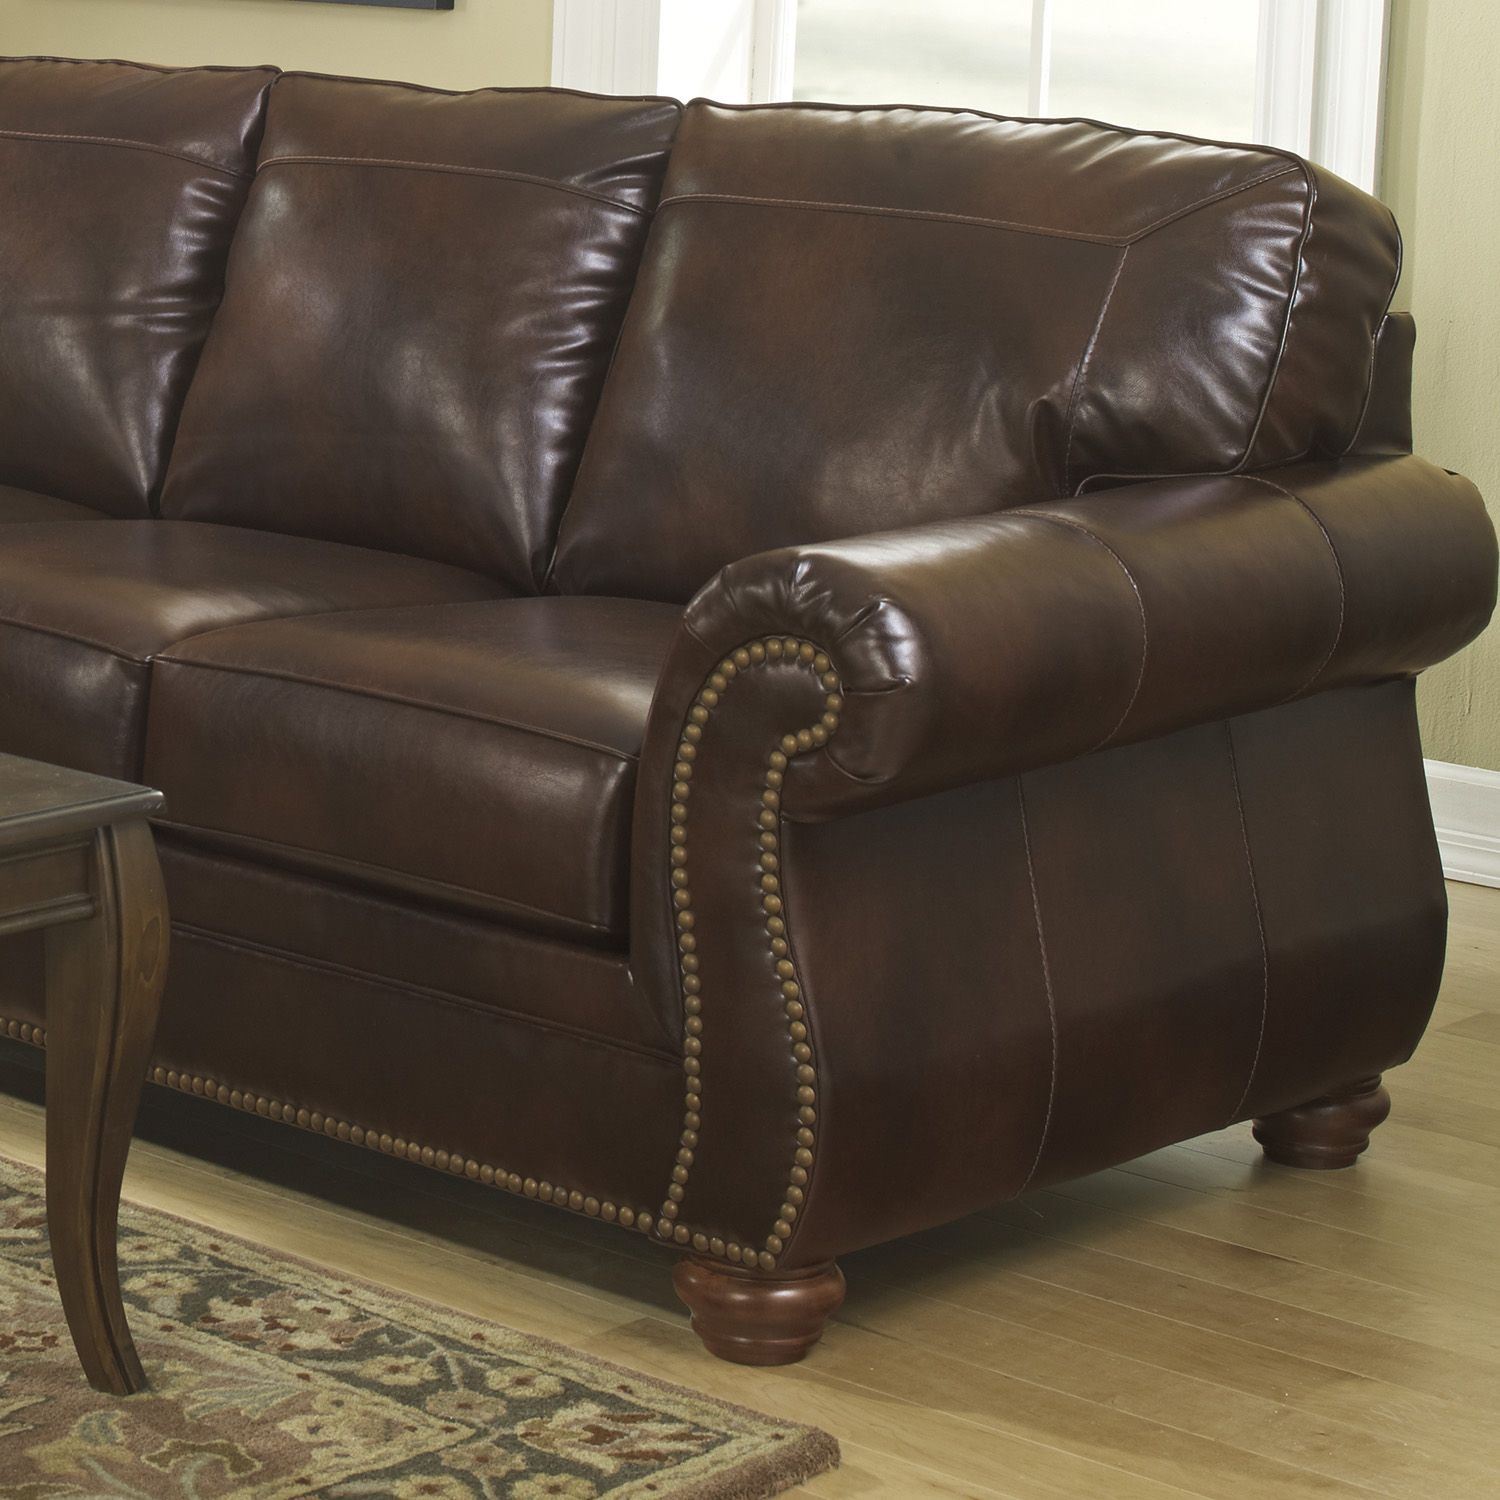 Berkline Sofa Leather Home Design Styling Intended For Berkline Sofa Recliner (Image 6 of 15)